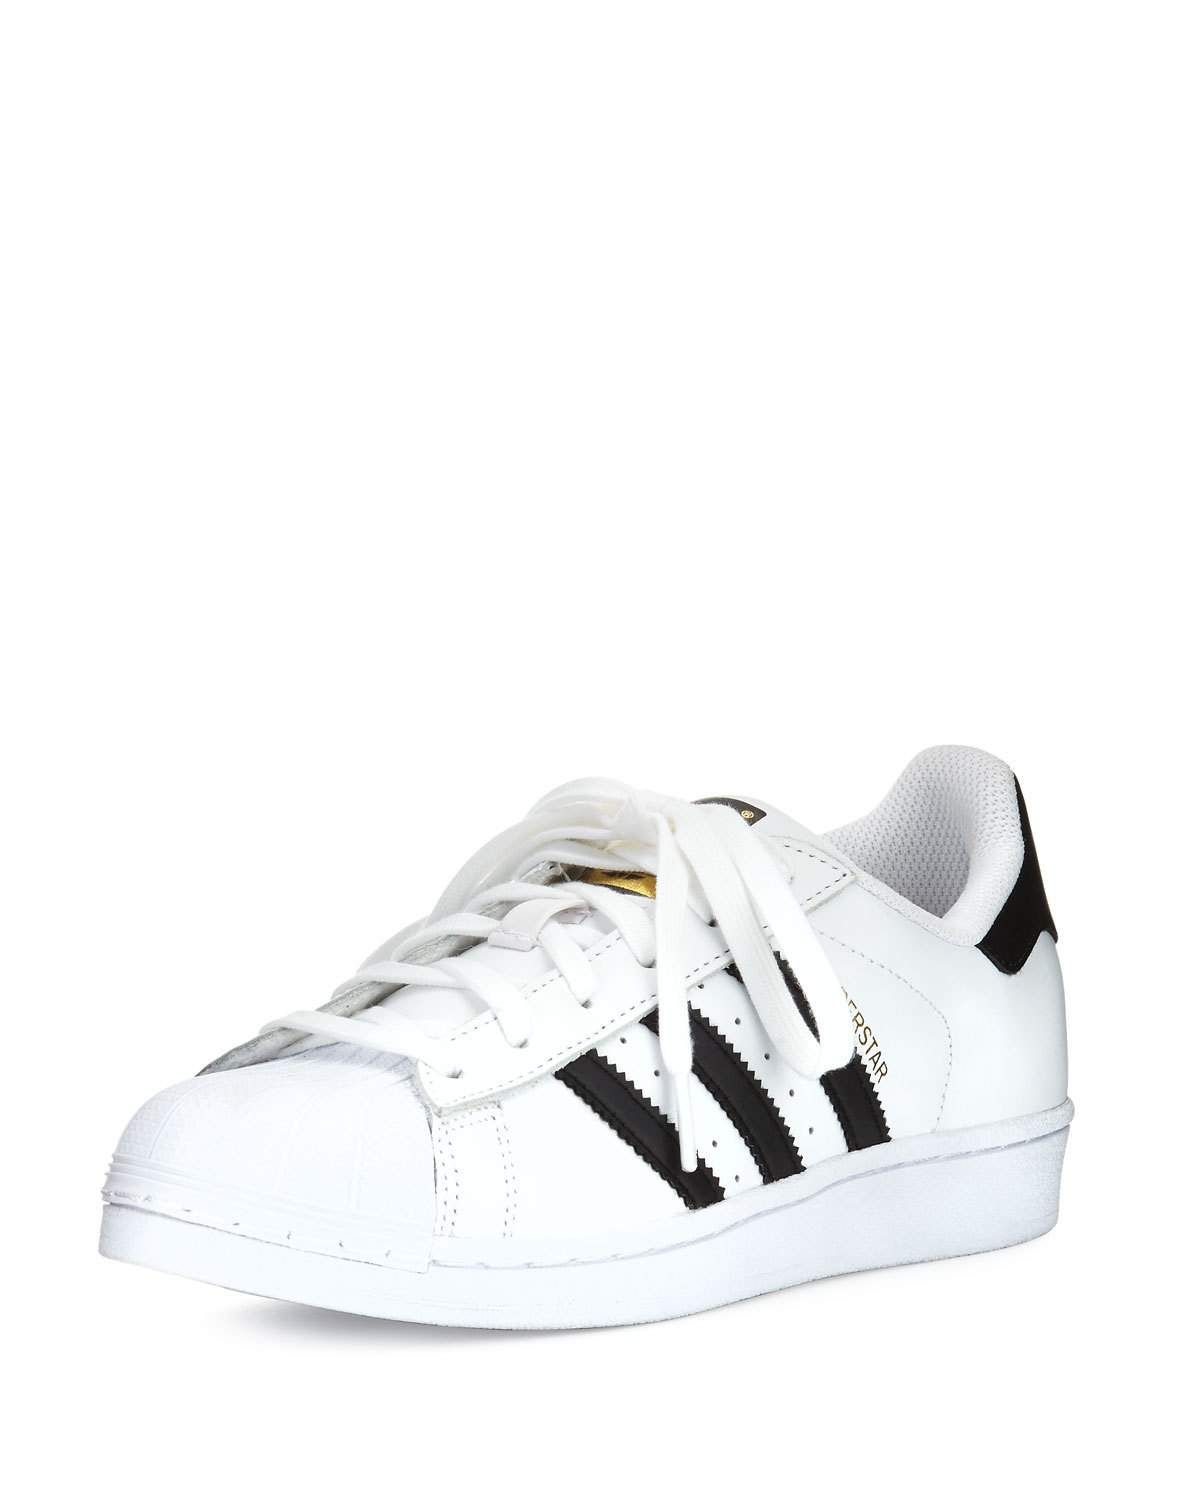 Adidas Superstar Classic Sneakers